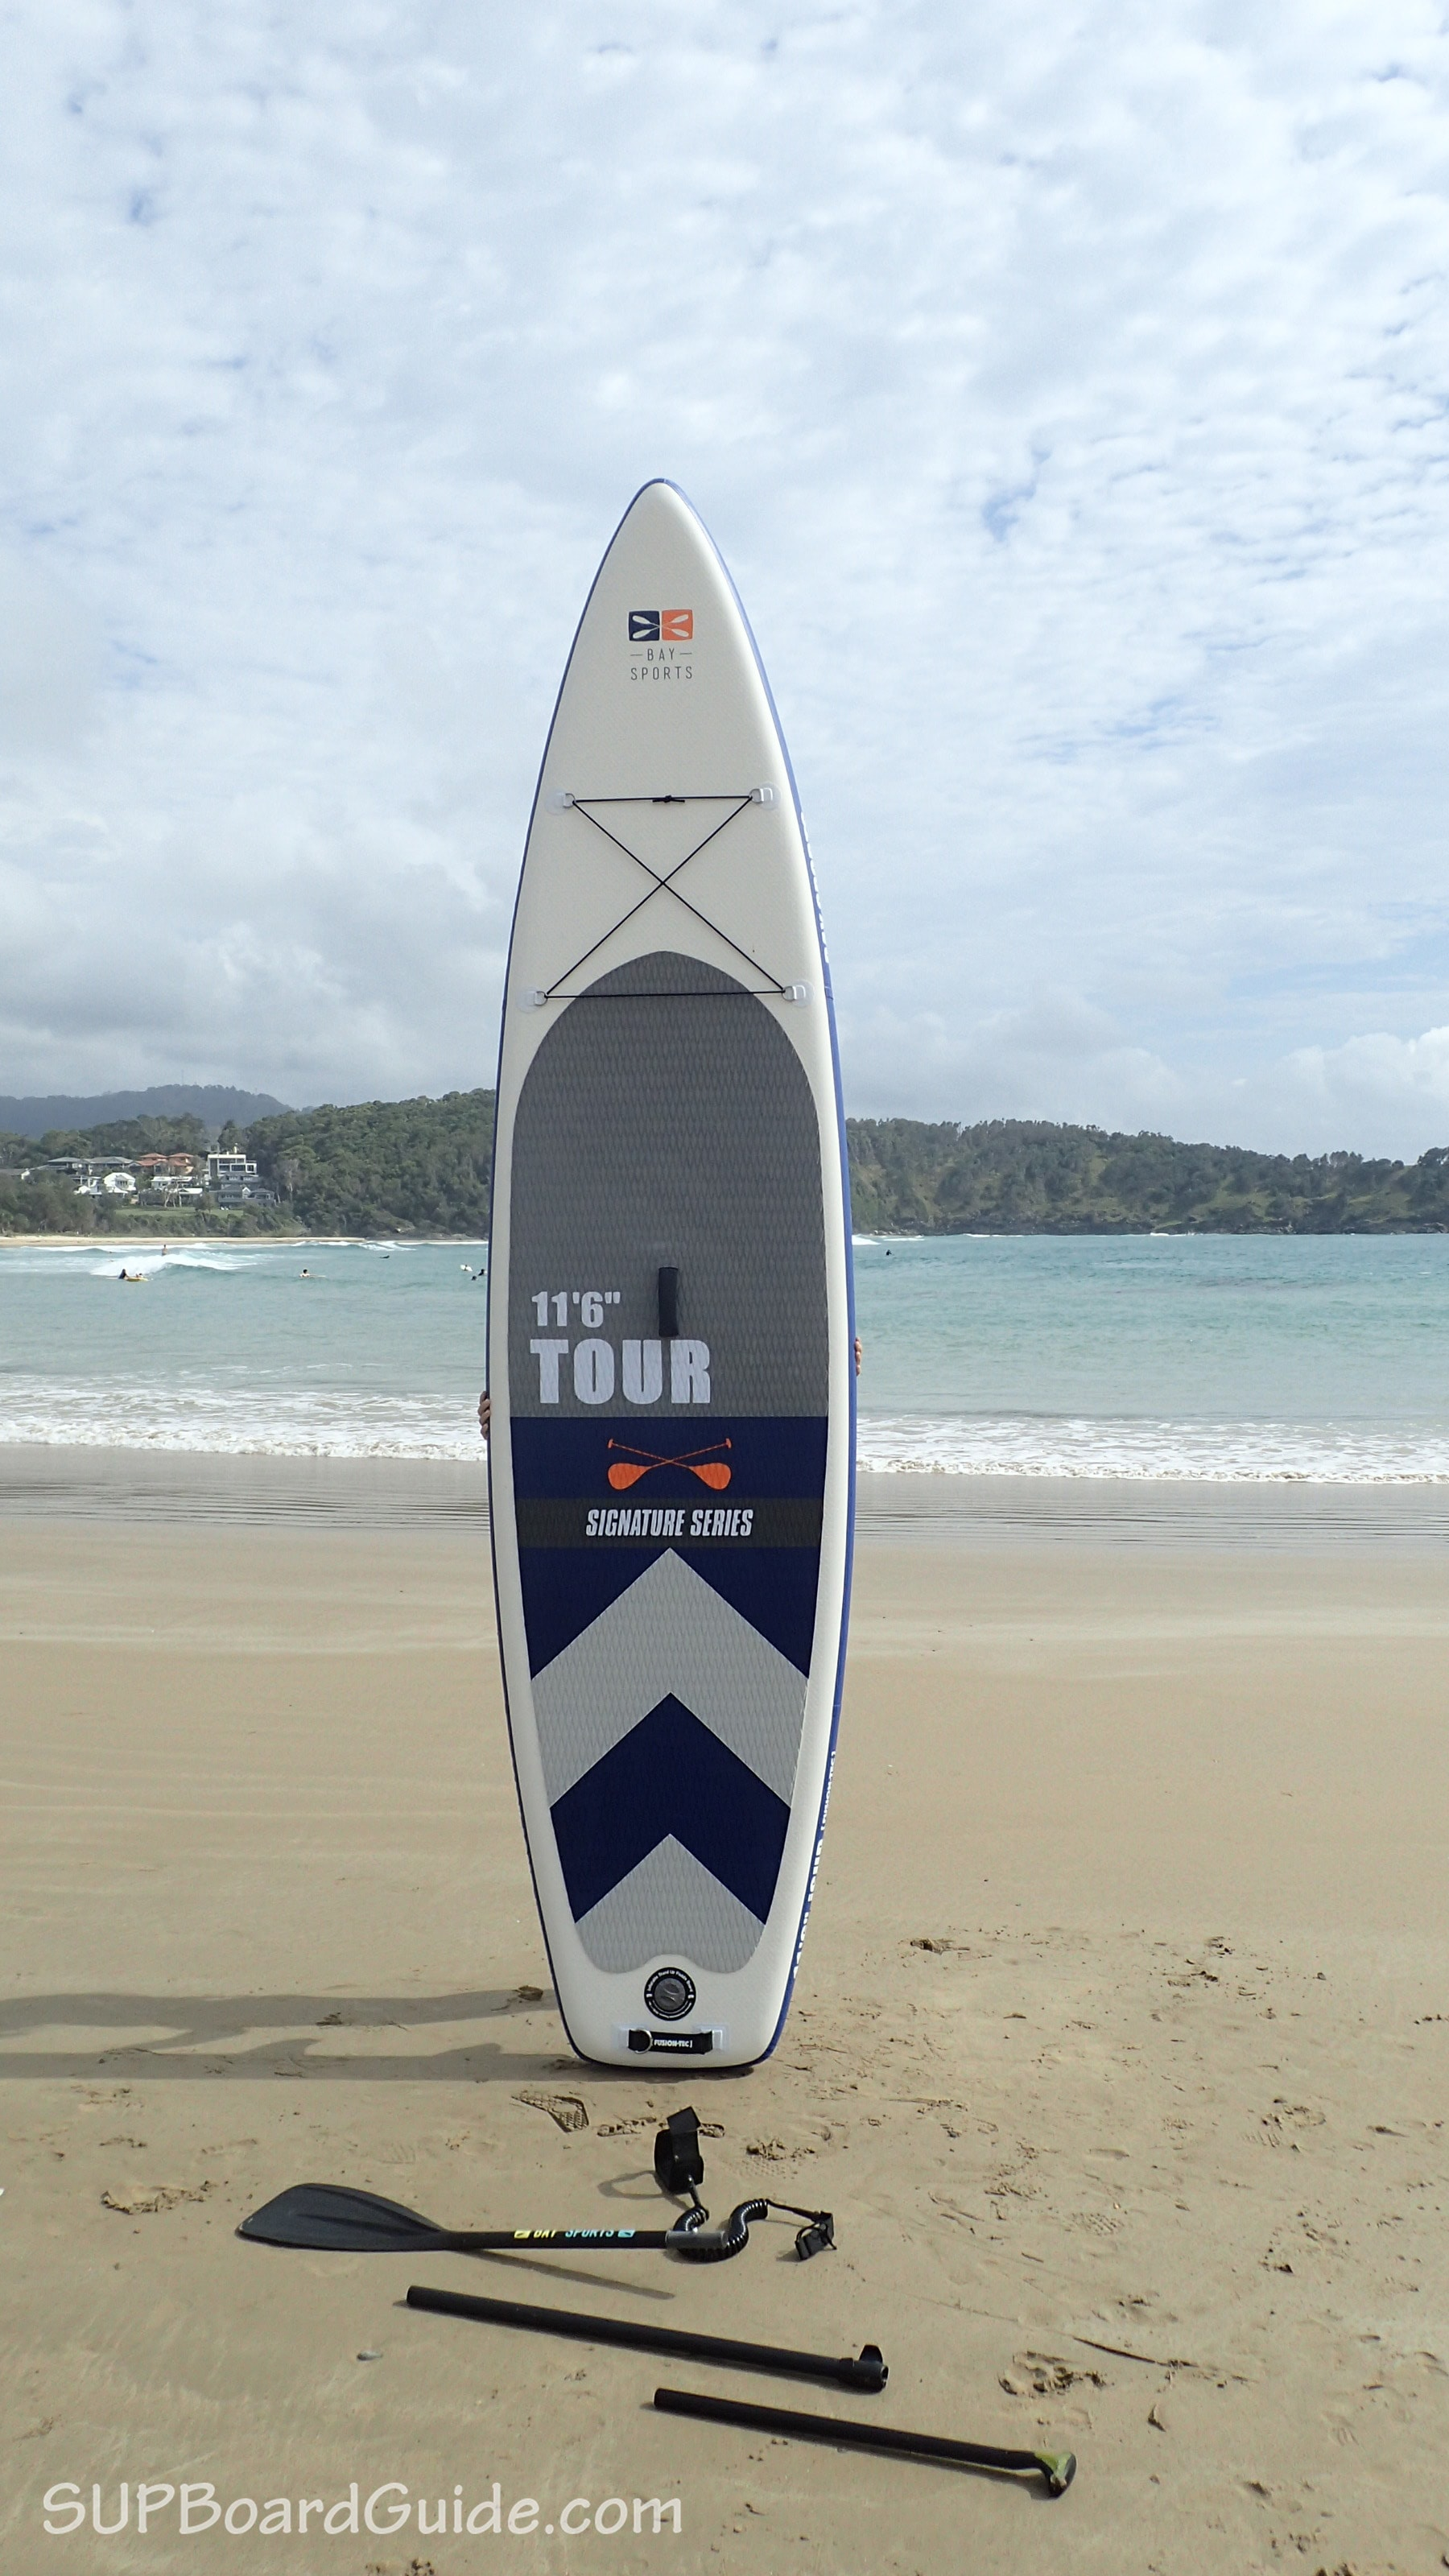 Bay Sports Tour Board Review